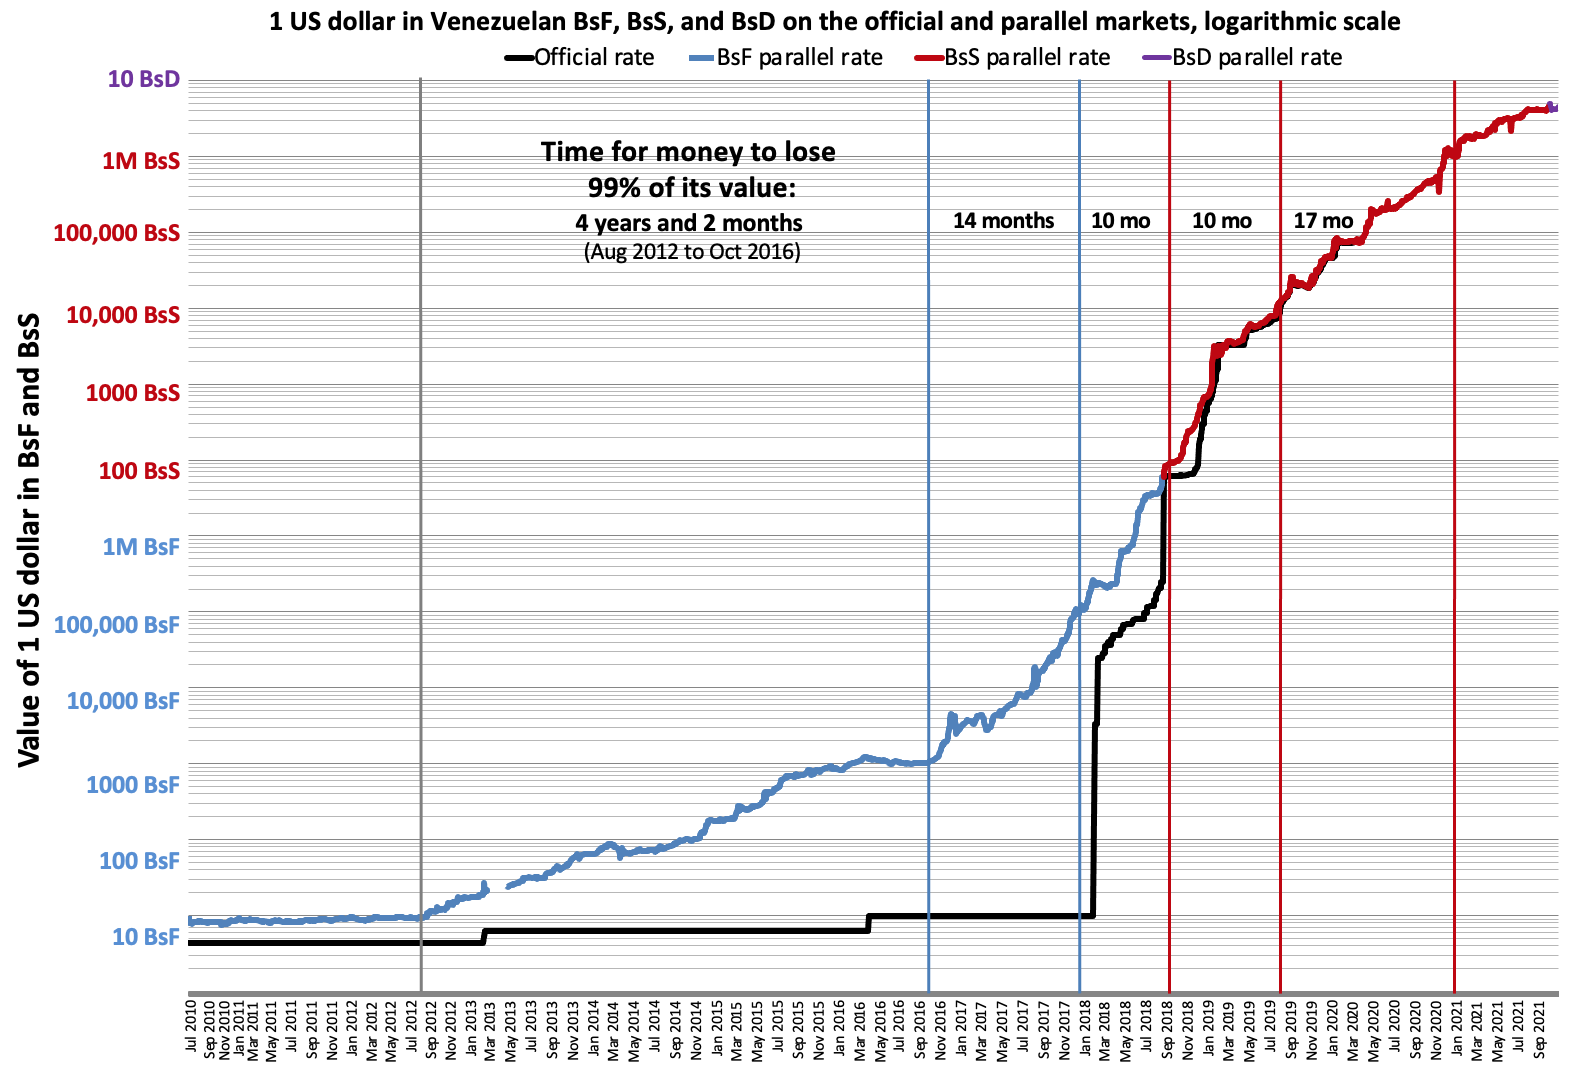 File Venezuela Inflation On The Black Market Dolartoday A Logarithmic Scale Png